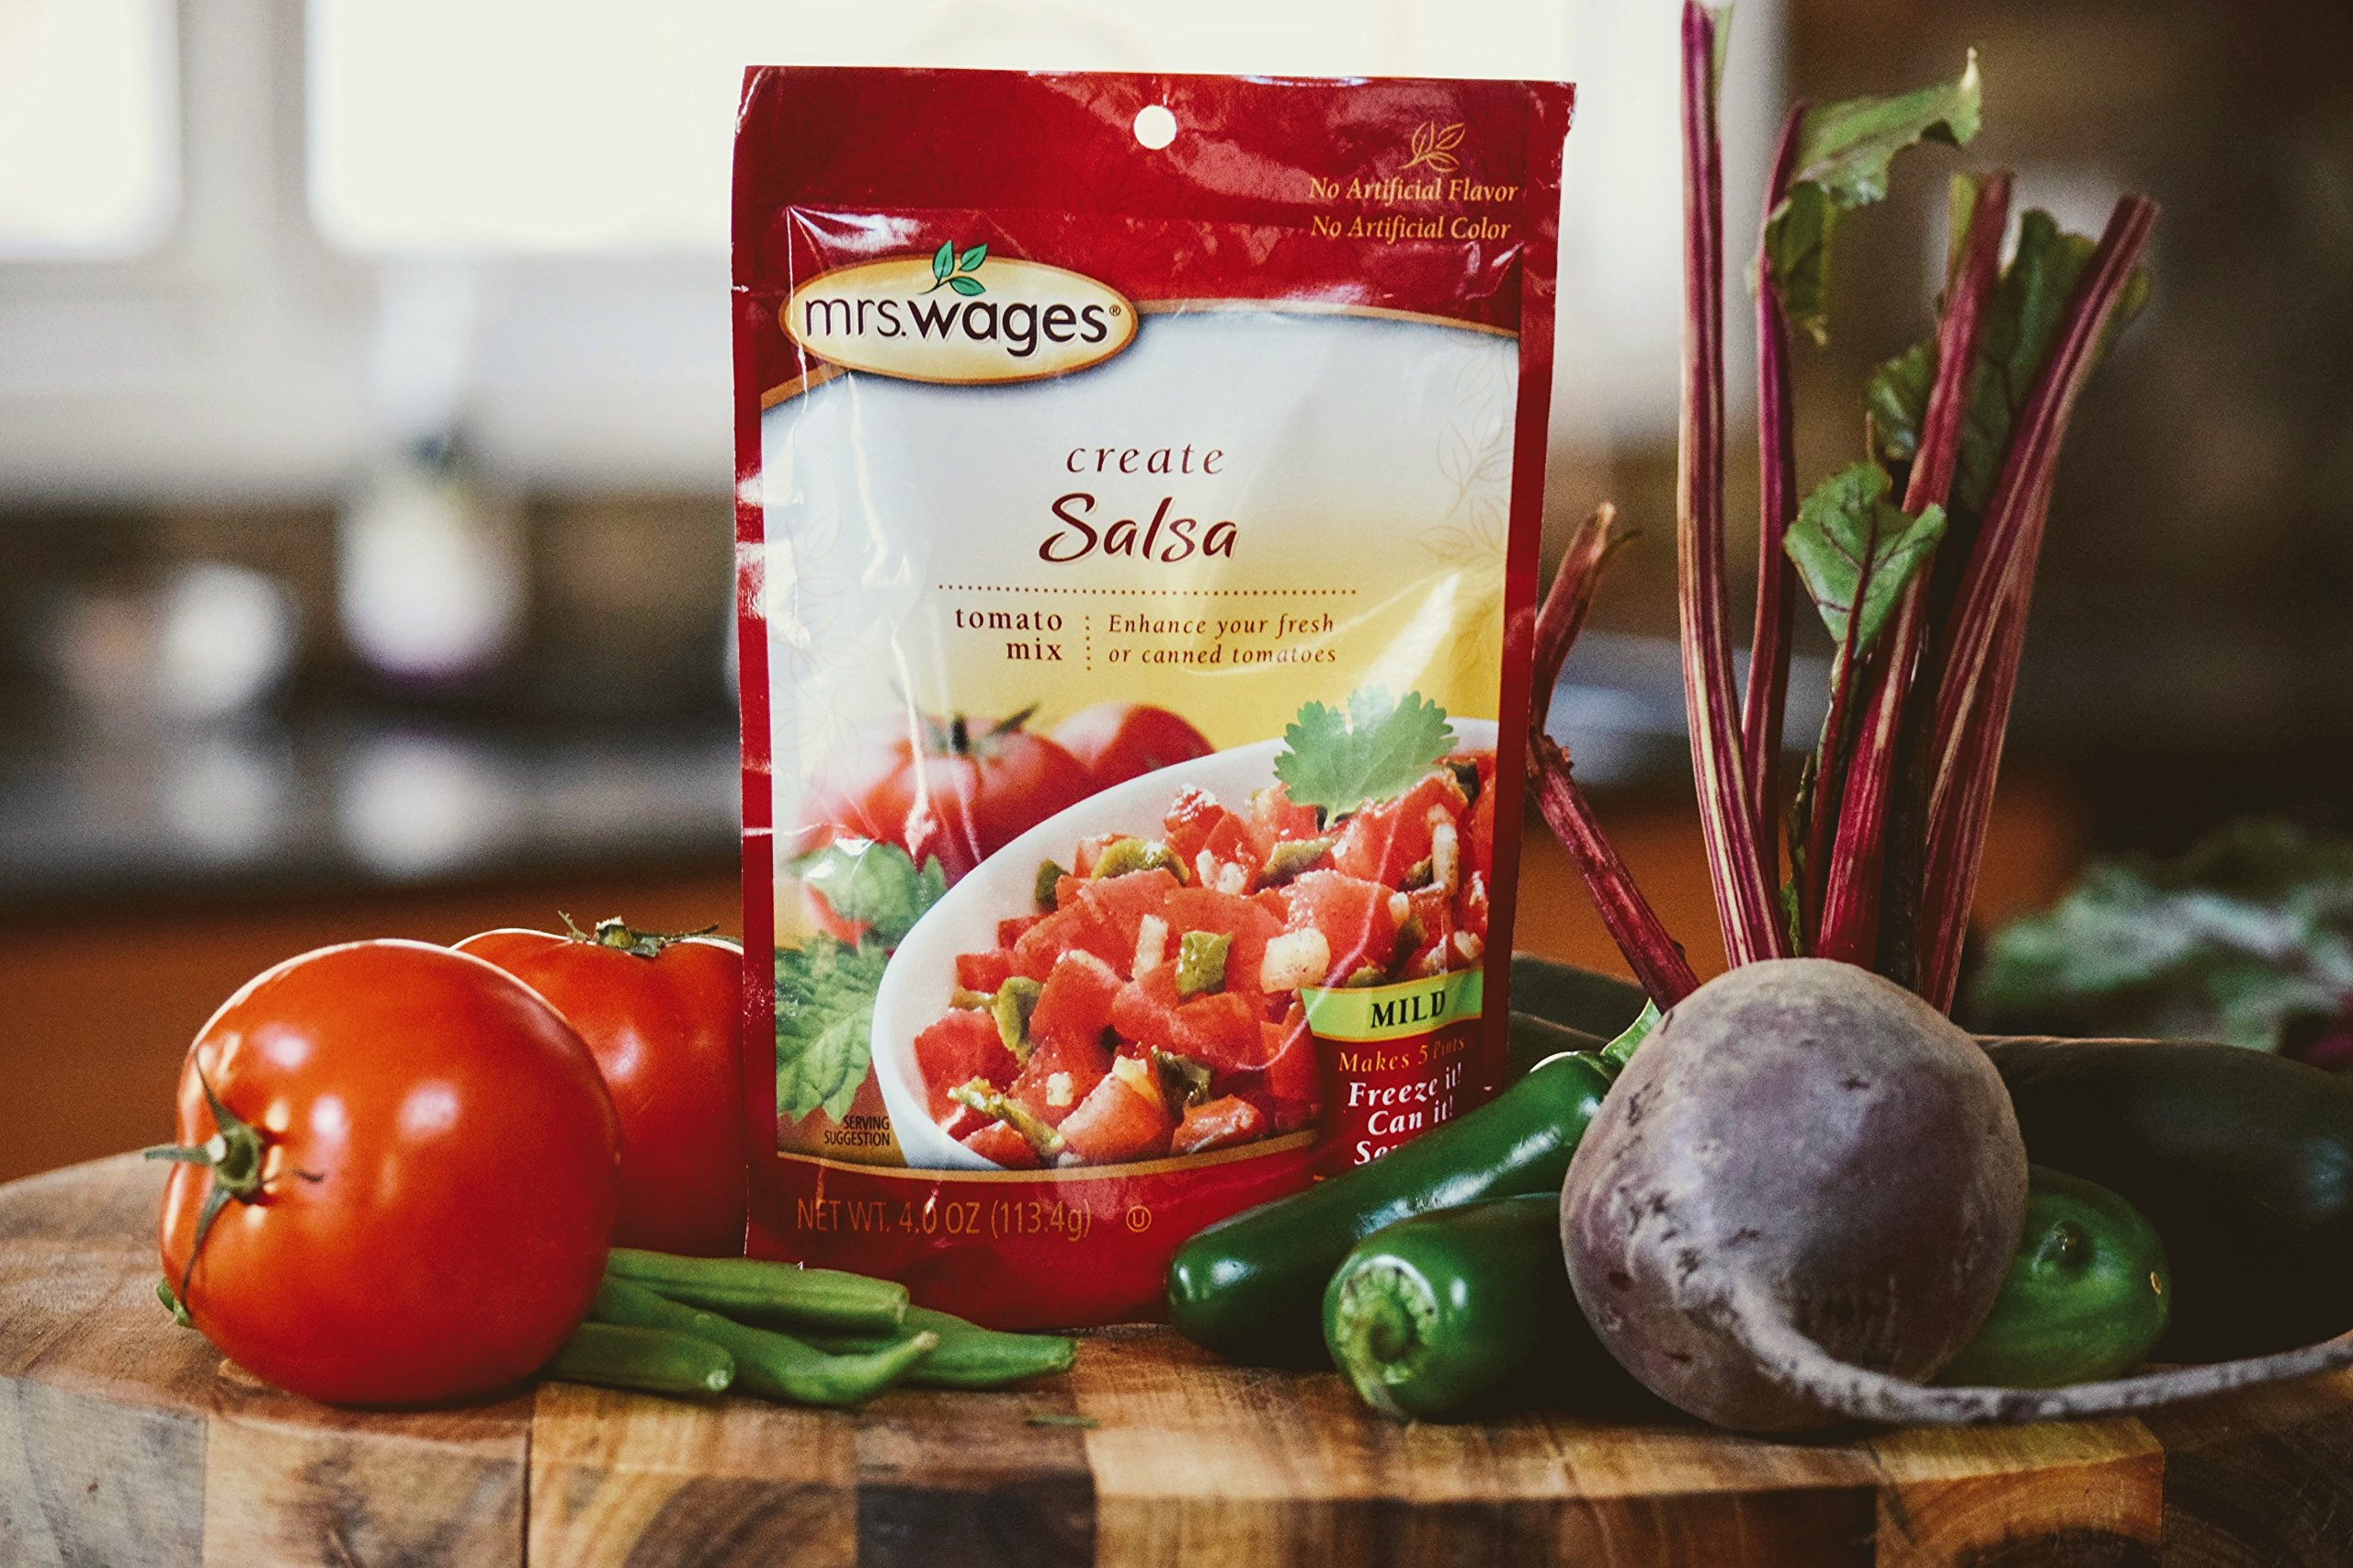 Mrs. Wages Create Salsa Tomato Mix, 4 Ounce (Pack of 12) by Mrs. Wages (Image #2)